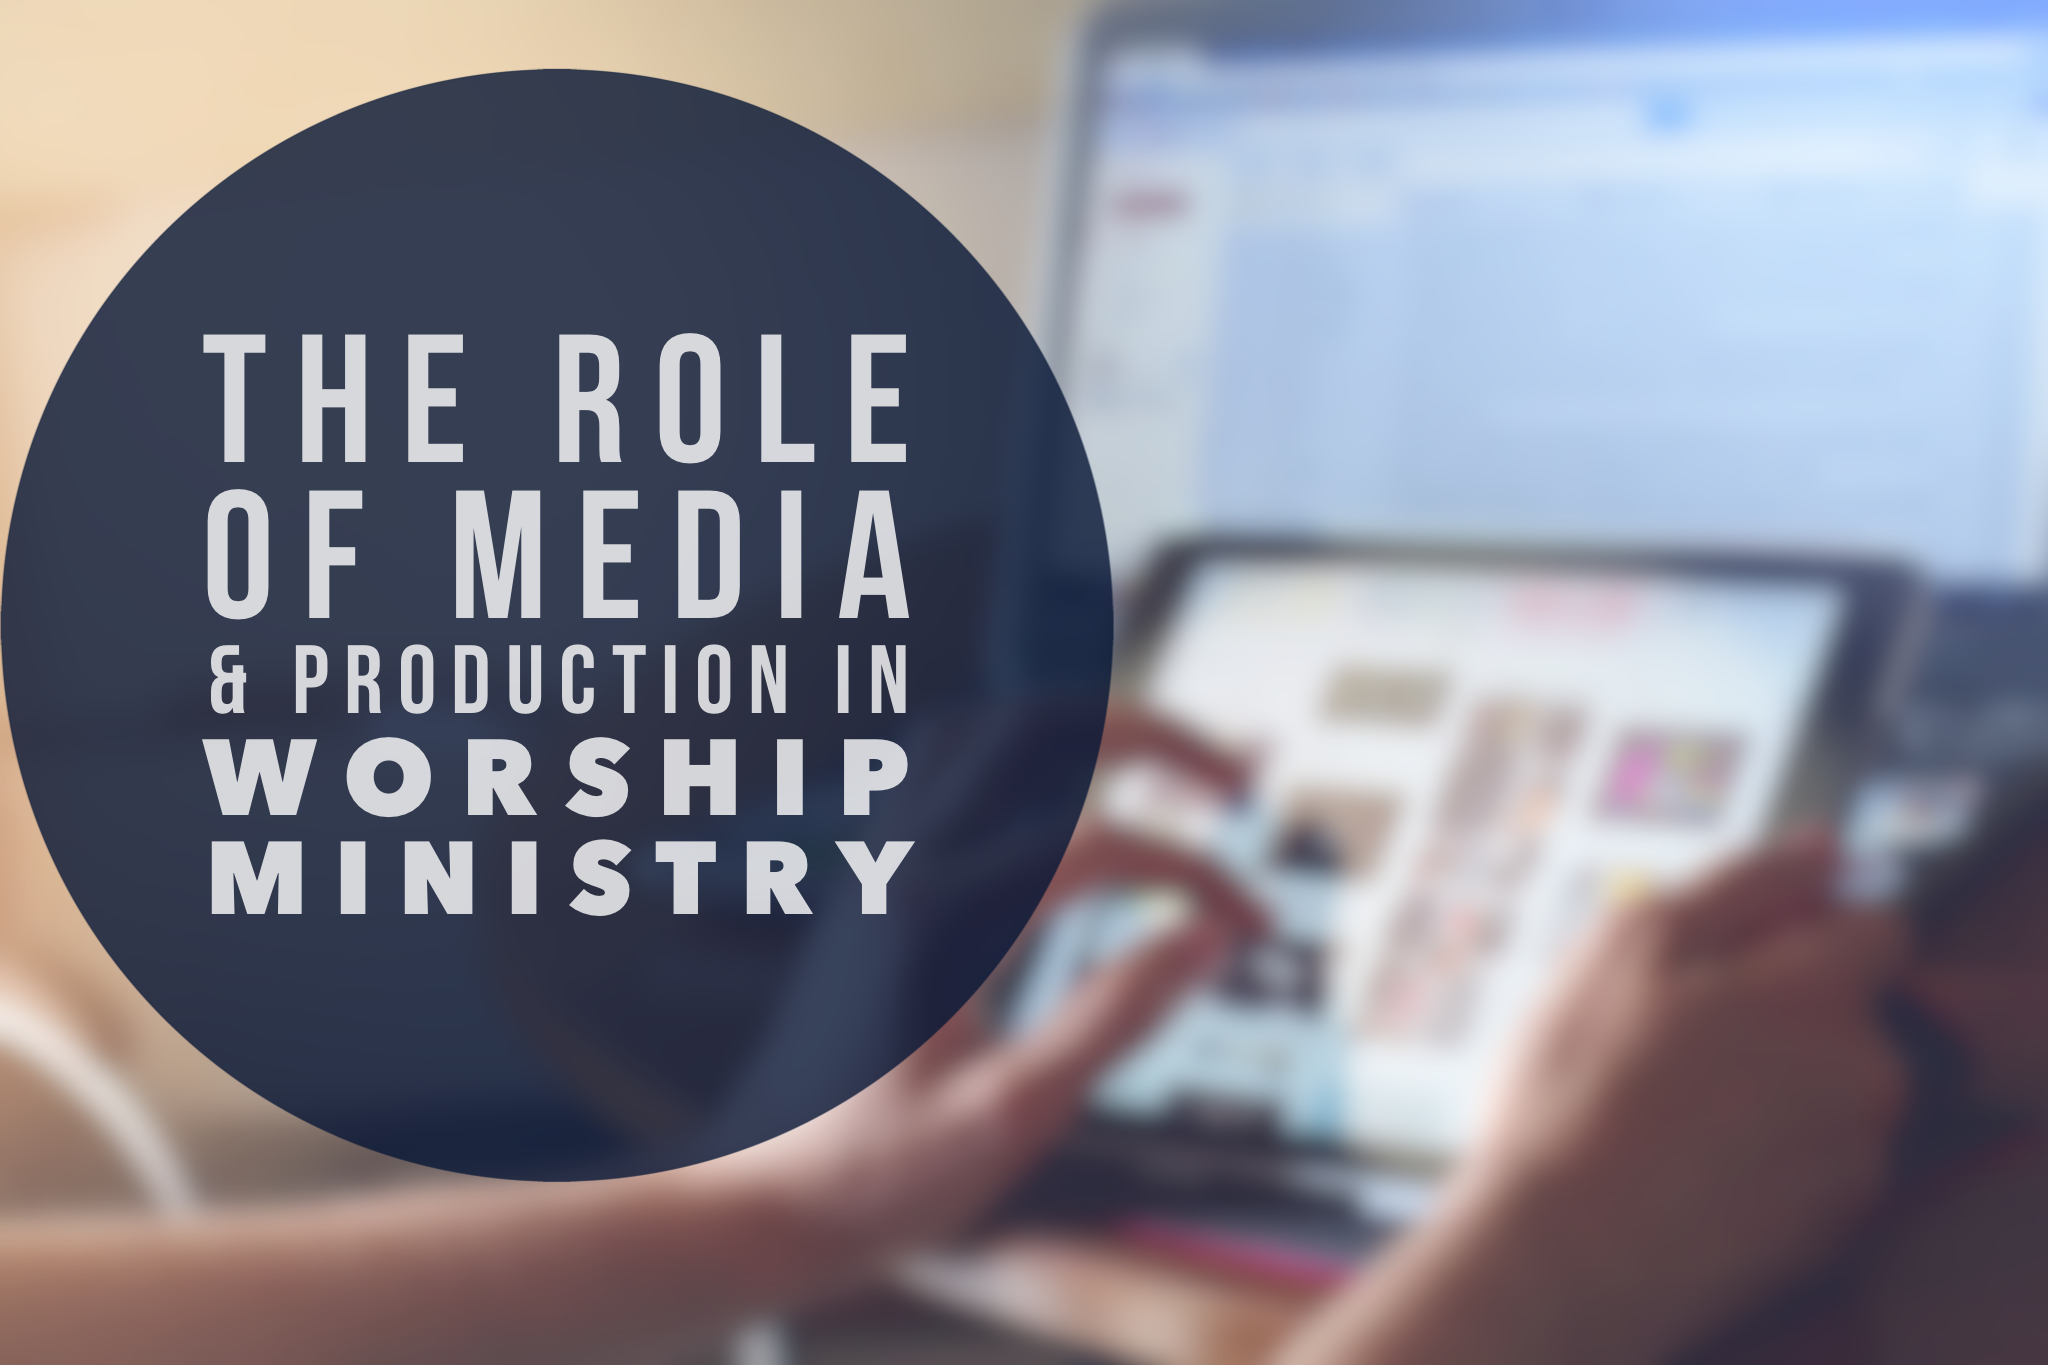 THE ROLE OF MEDIA & PRODUCTION